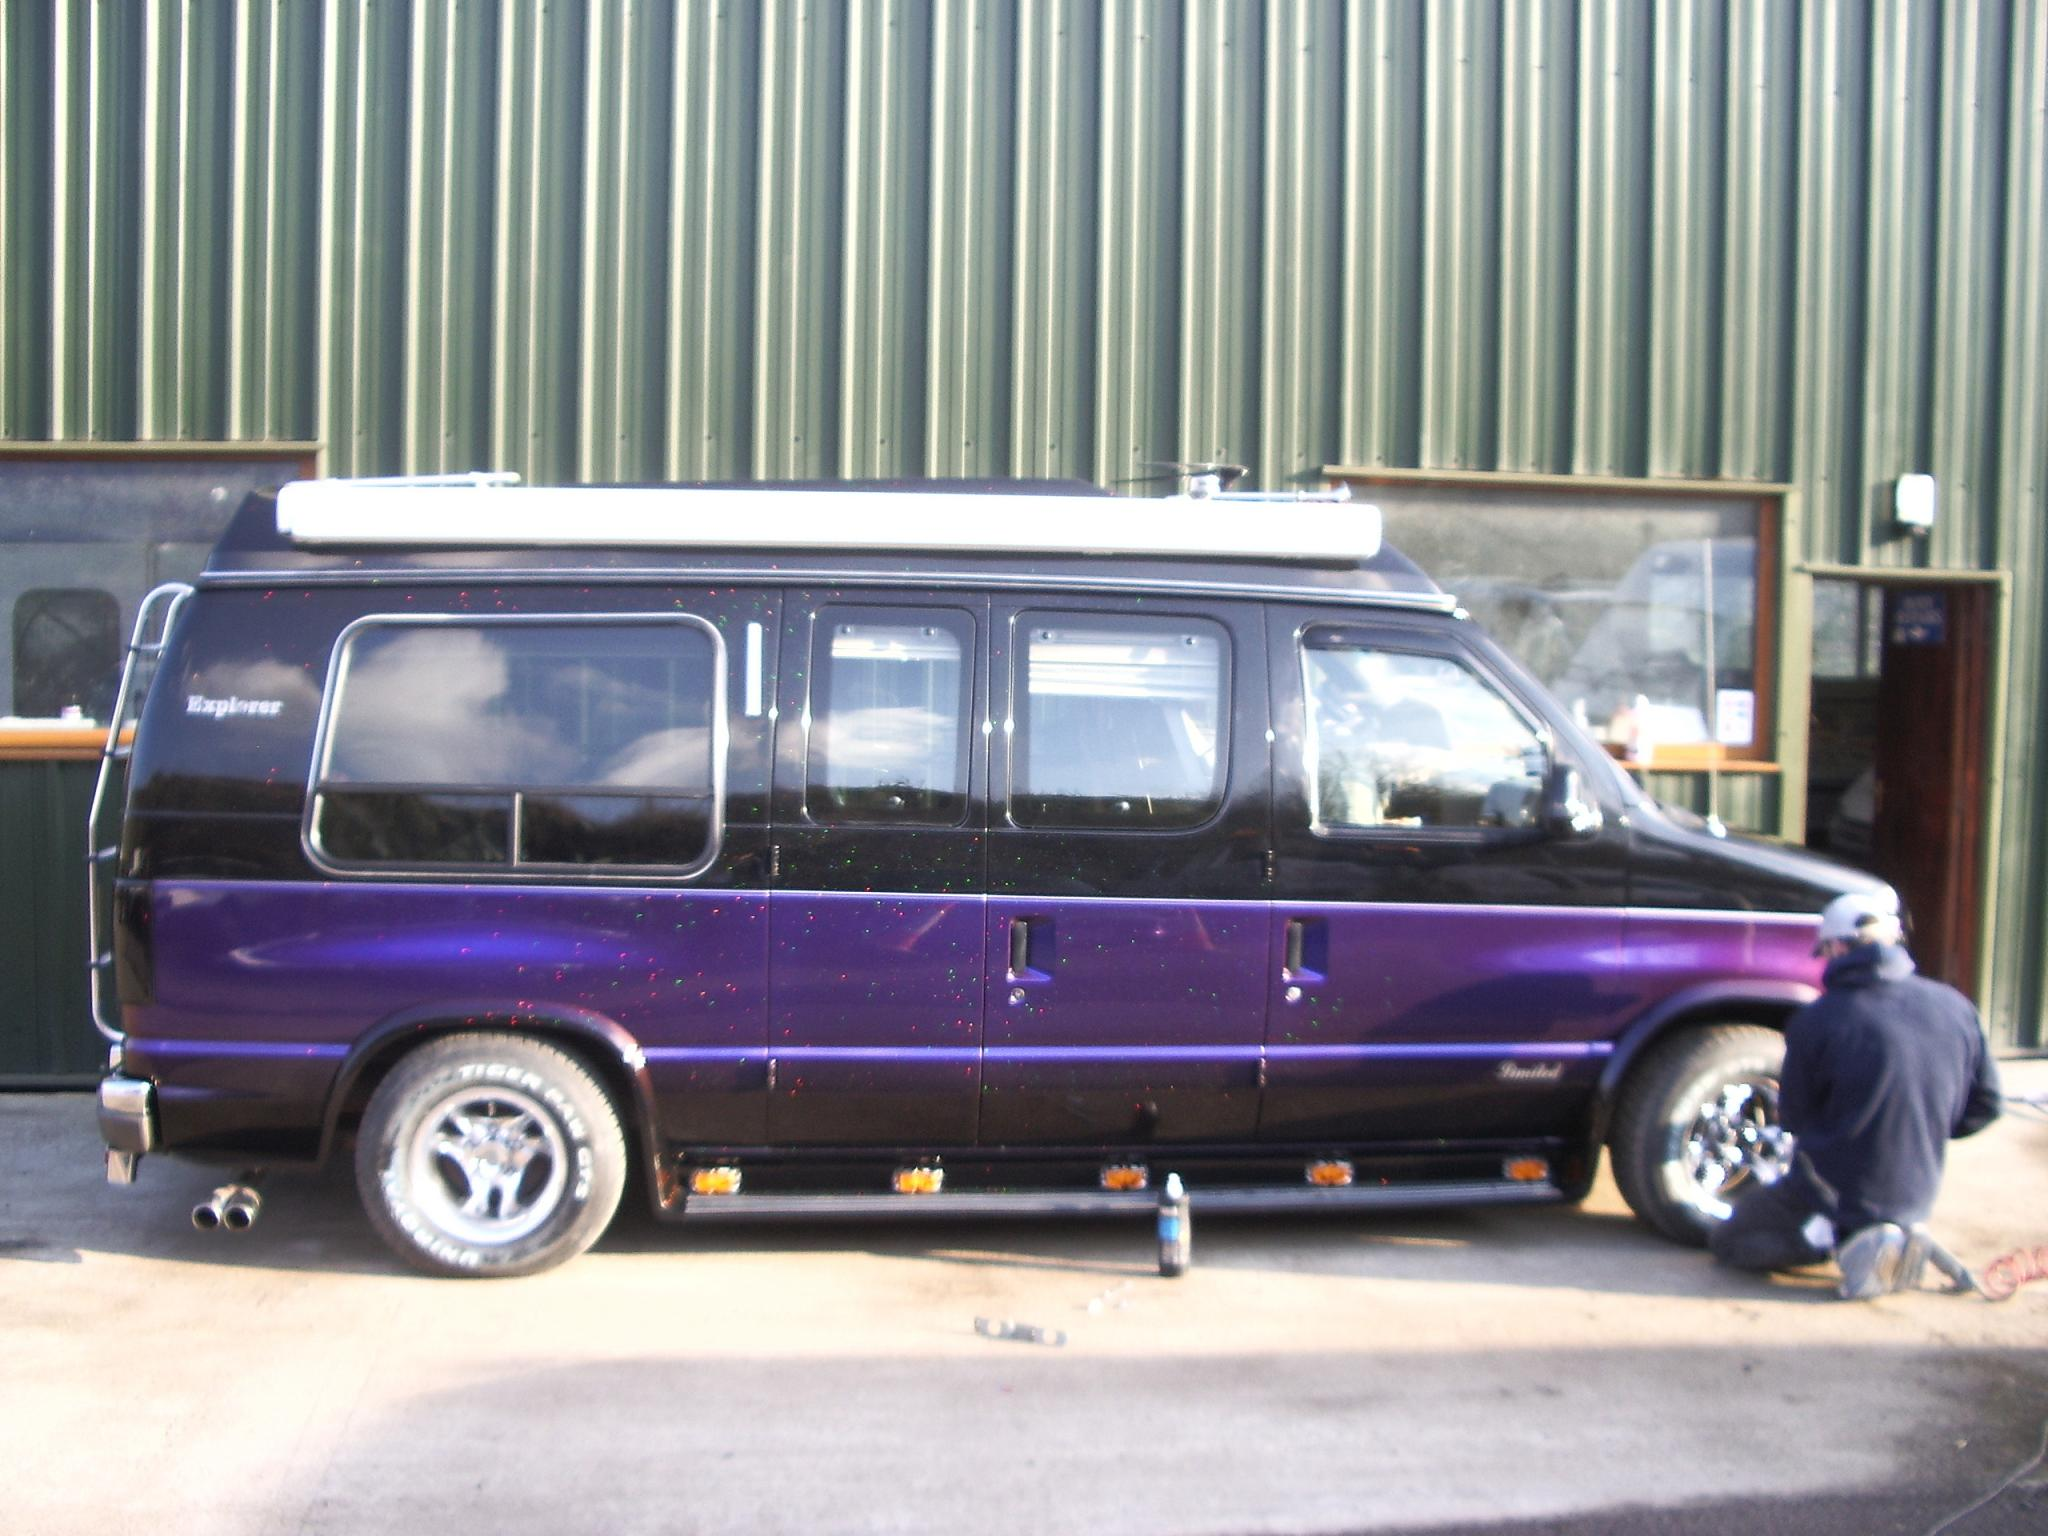 What Is The Widest Tire For A 1992 Econoline Conversion Van